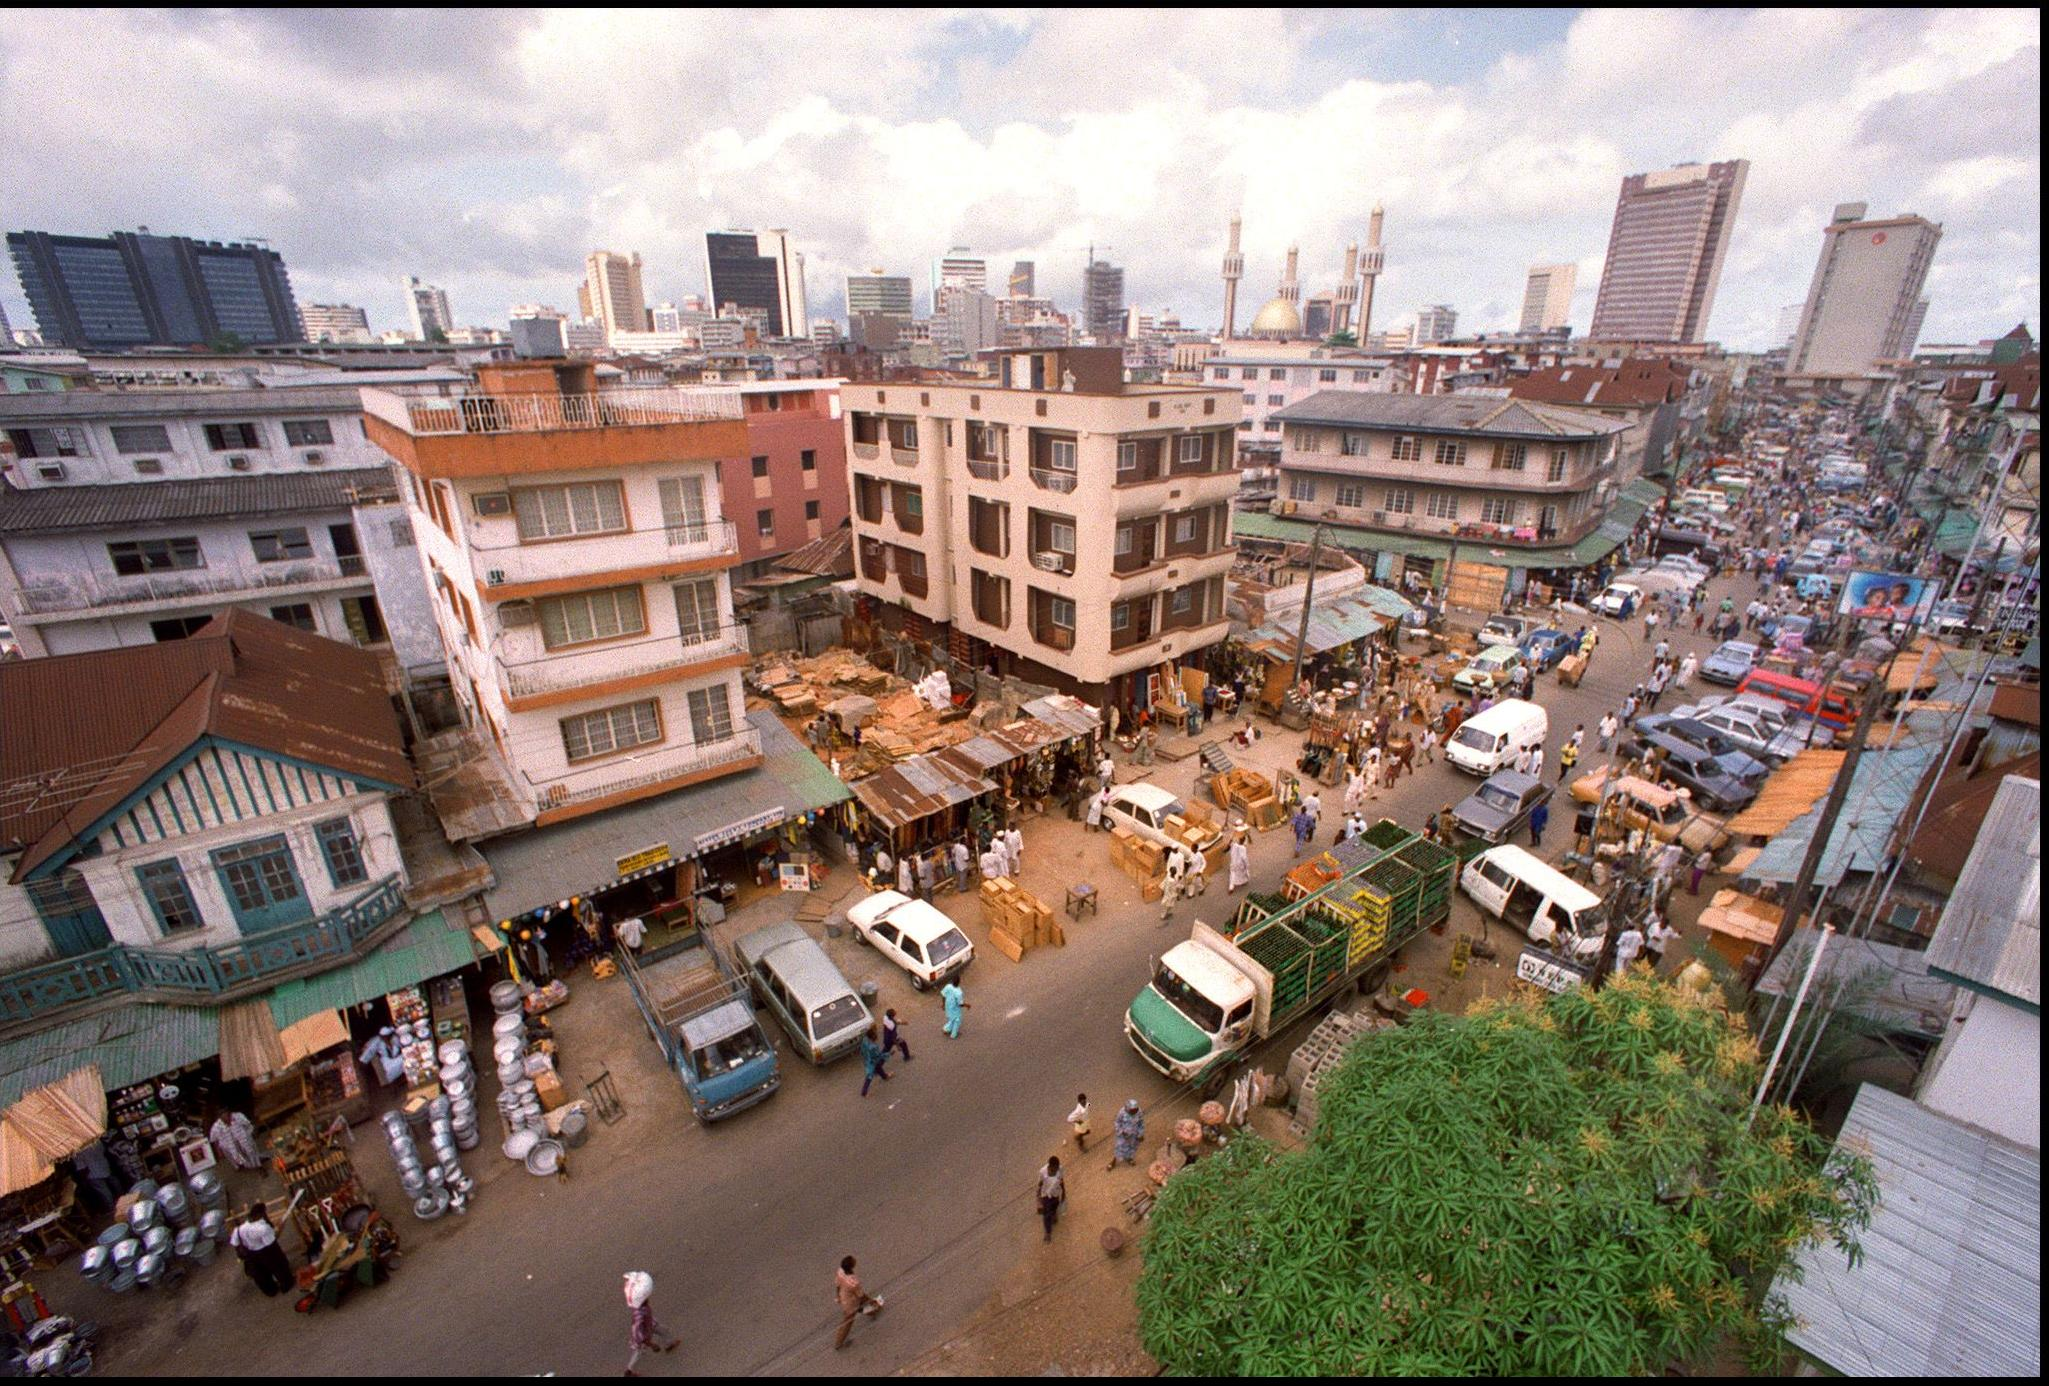 Aerial view of a street in Lagos, Nigeria